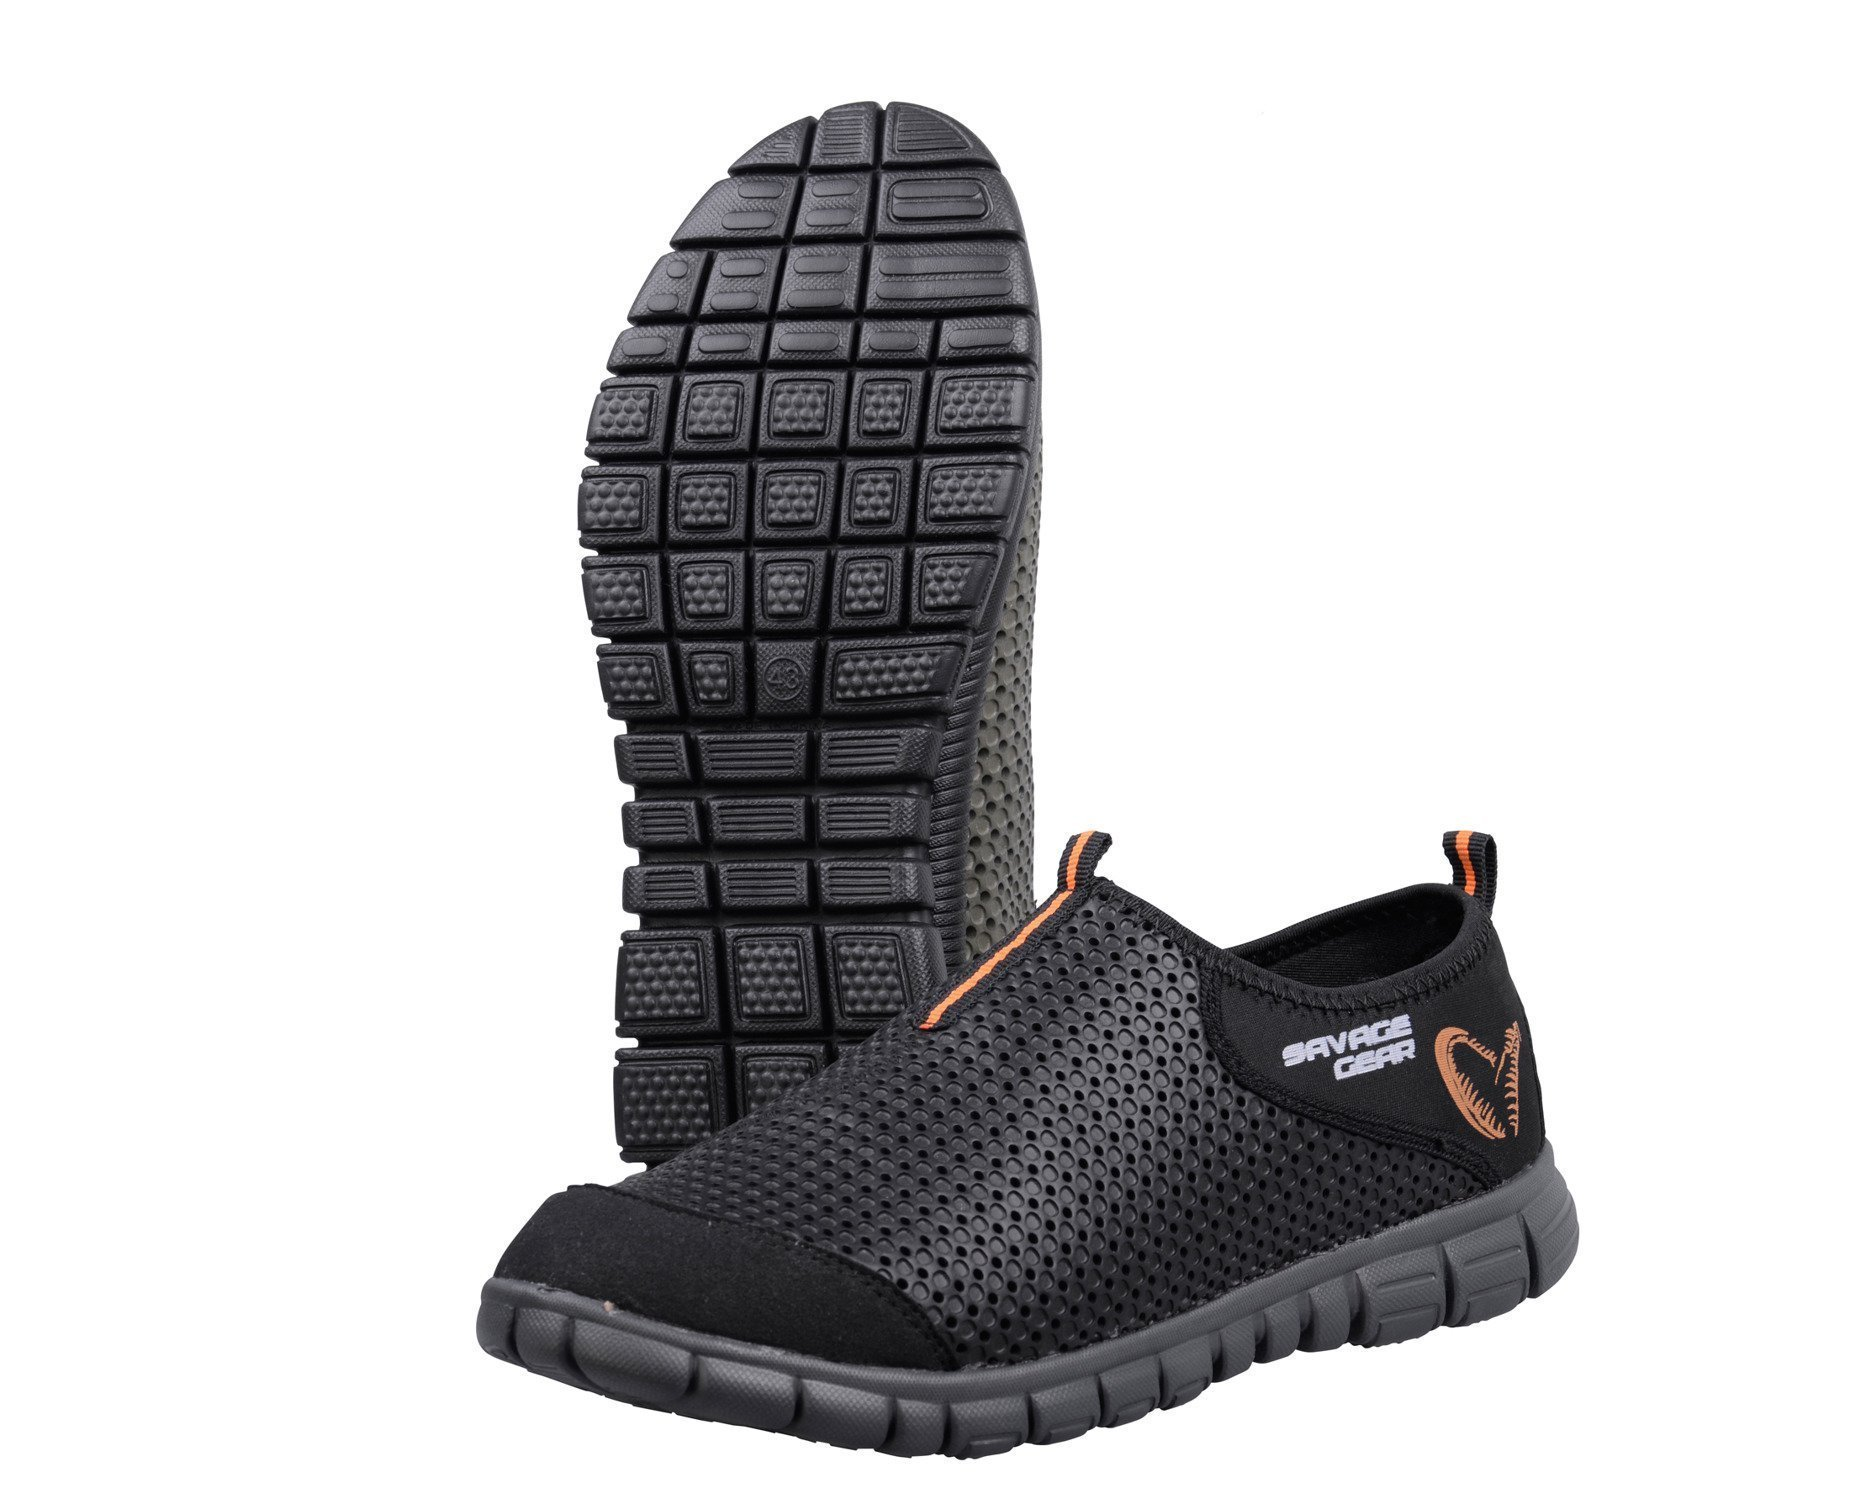 Savage Gear Buty Coolfit rozm. 41